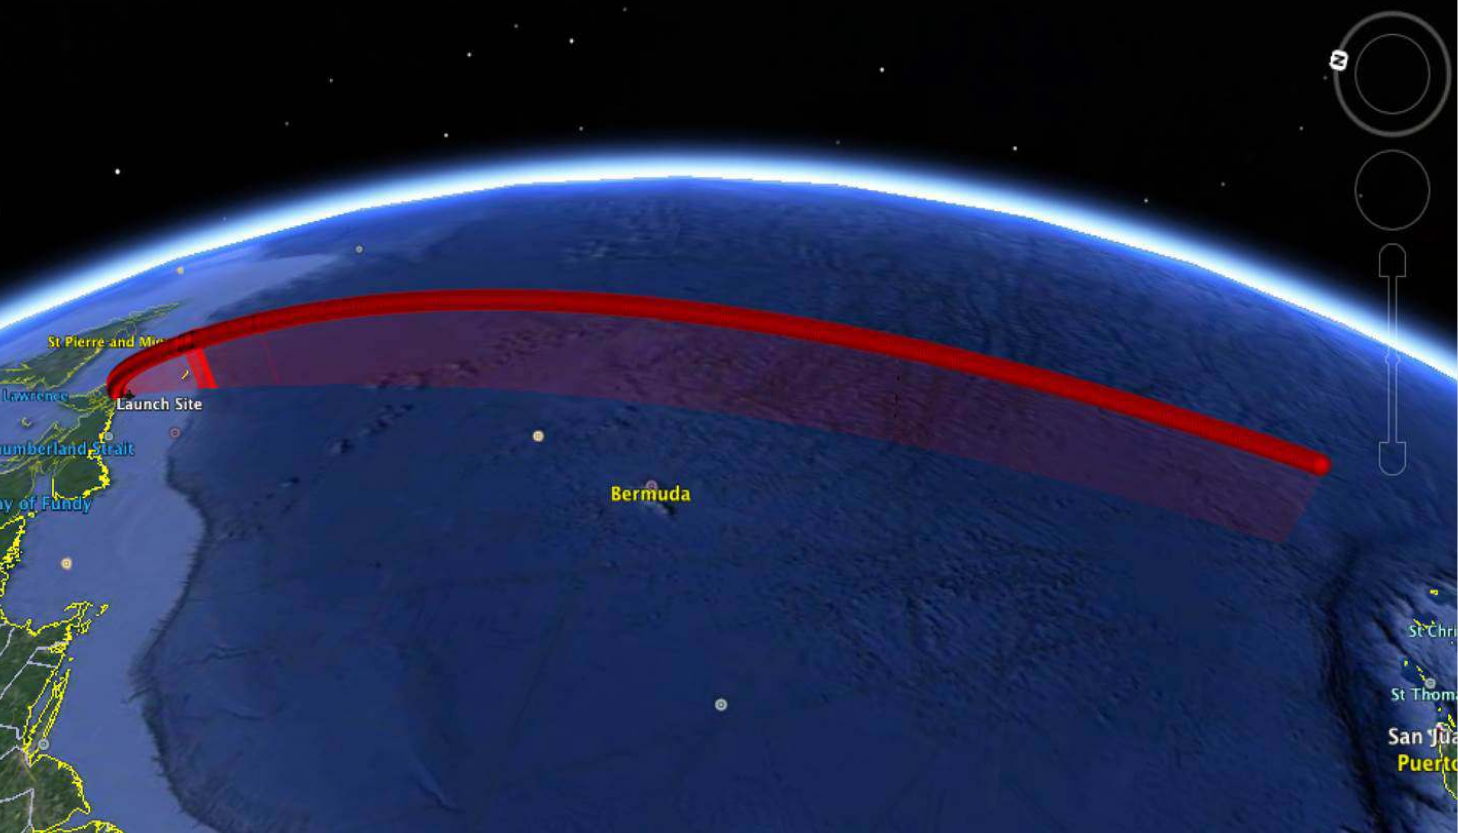 The launch trajectory would be specific to each particular mission. However, all launches would be conducted to the south over the Atlantic Ocean, similar to what is depicted above